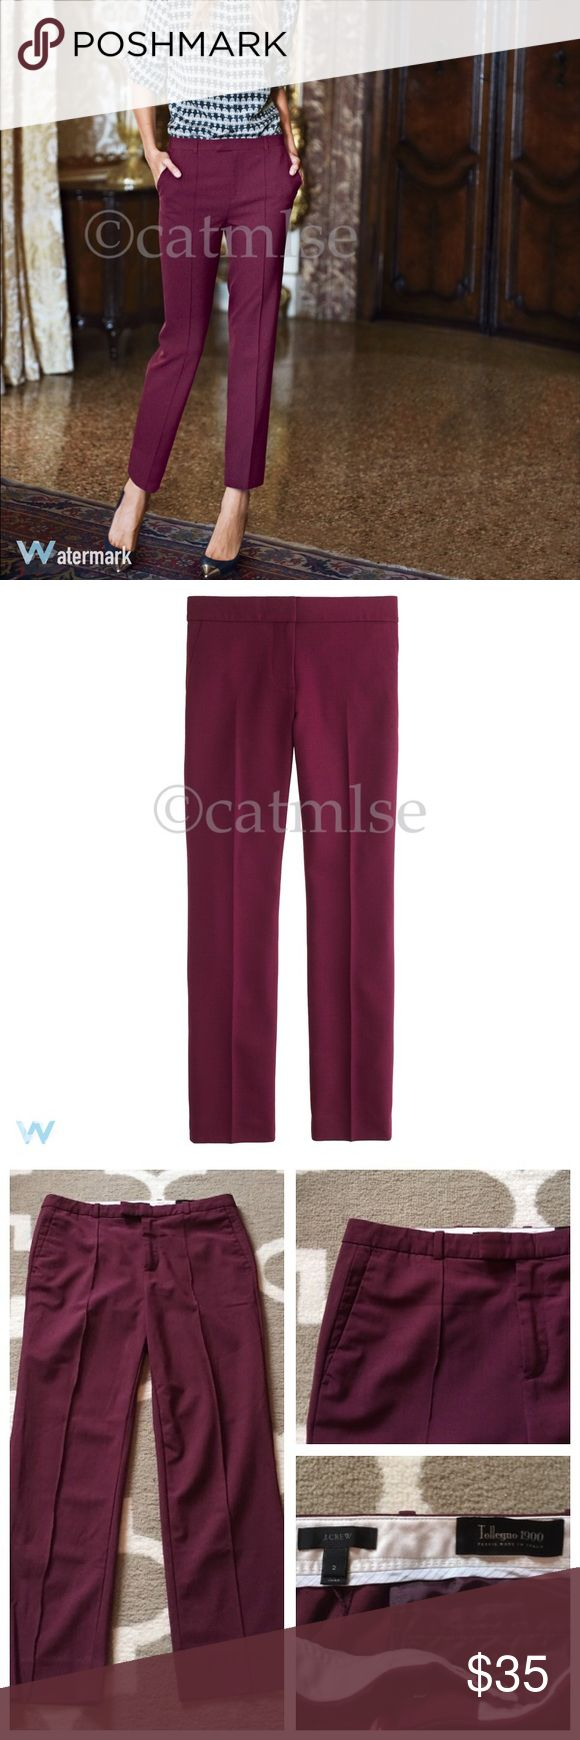 """JCrew Tollegno Wool Eaton Boy Trousers Pants J Crew Tollegno Italian Wool Eaton Boy Trousers Pants in Burgundy. Wool is a lightweight all-season type, not itchy. Perfect condition, no flaws.   • Waist 15"""" • Hips 18"""" • Inseam 26"""" • Rise 9.5""""  Taking inspiration from classic men's suiting trousers, we gave this pant a feminine, slightly shrunken silhouette with a crisp, straight leg and finished it with pintucks and a cropped hem. Made from a stretchy wool found at one of Italy's oldest mills…"""